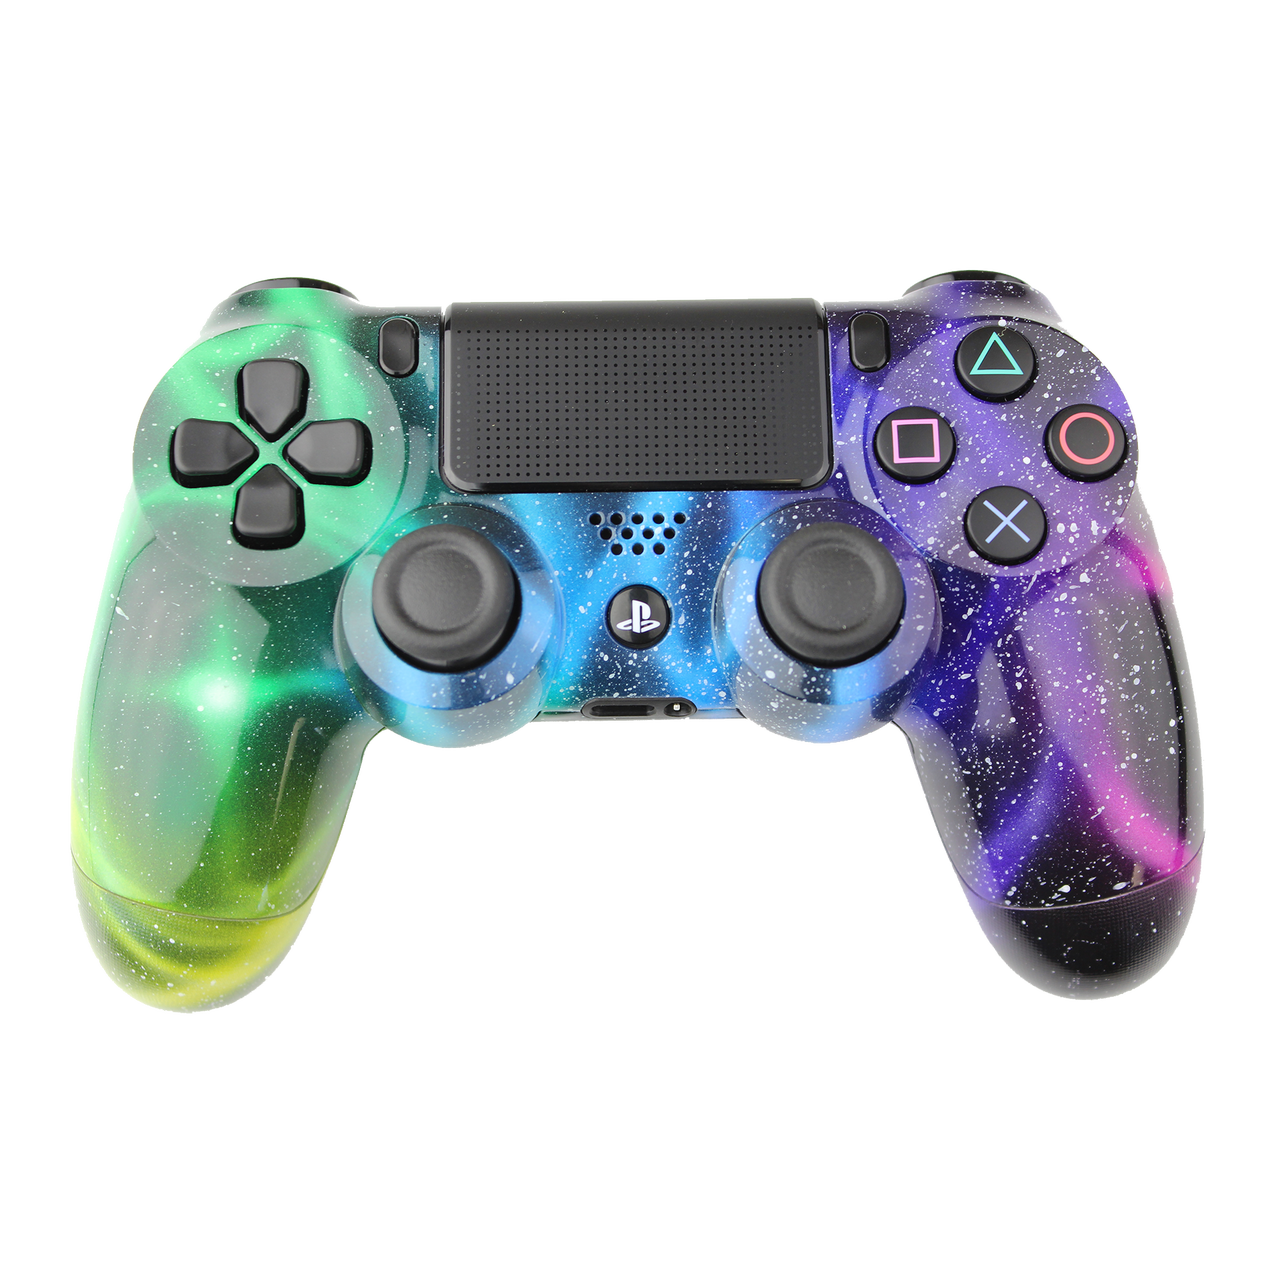 Morbidstix Nebula Galaxy Playstation 4 Controller 99 99 Http Www Morbidstix Com Nebula Galaxy Video Games Playstation Playstation Playstation Controller